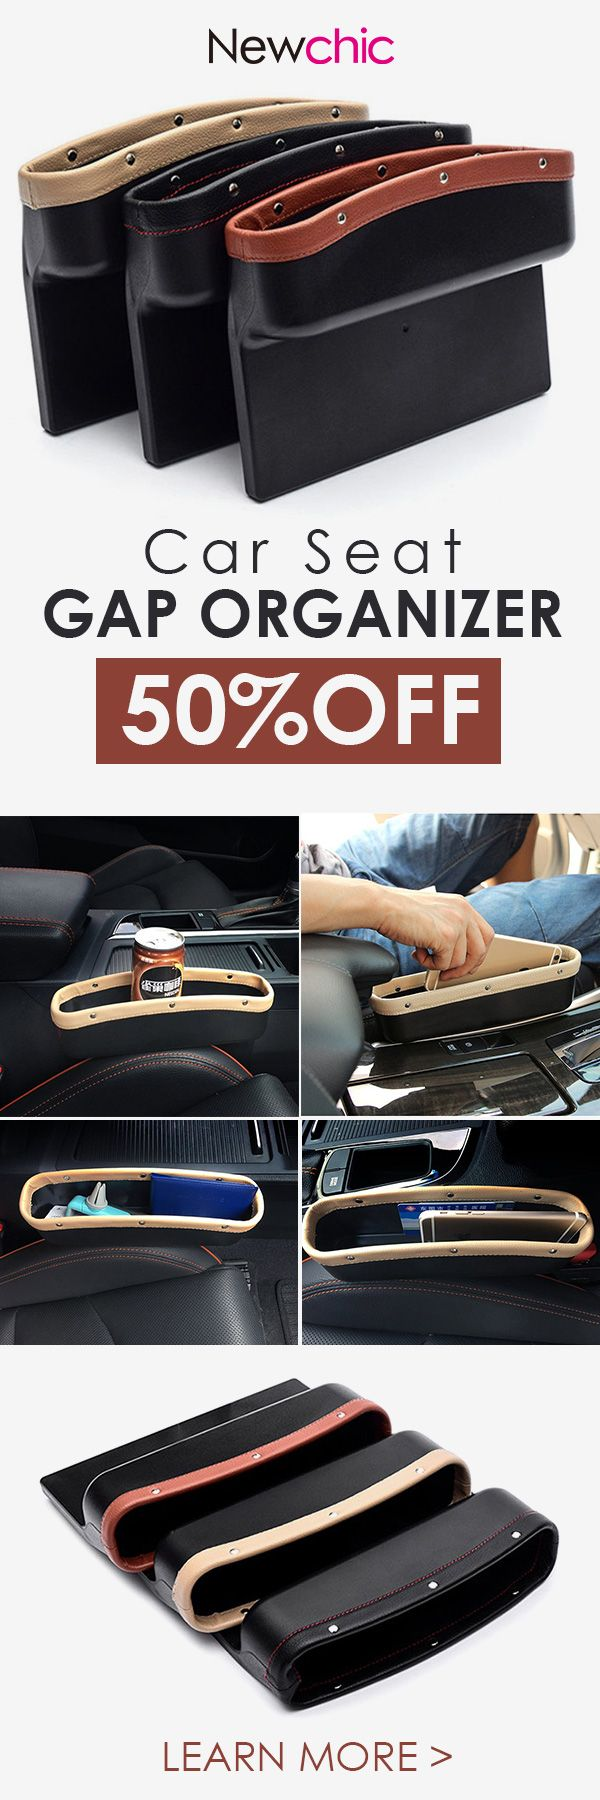 Car Seat Gap Organizer for Universal Cars#newchic#cars#storage#organizer